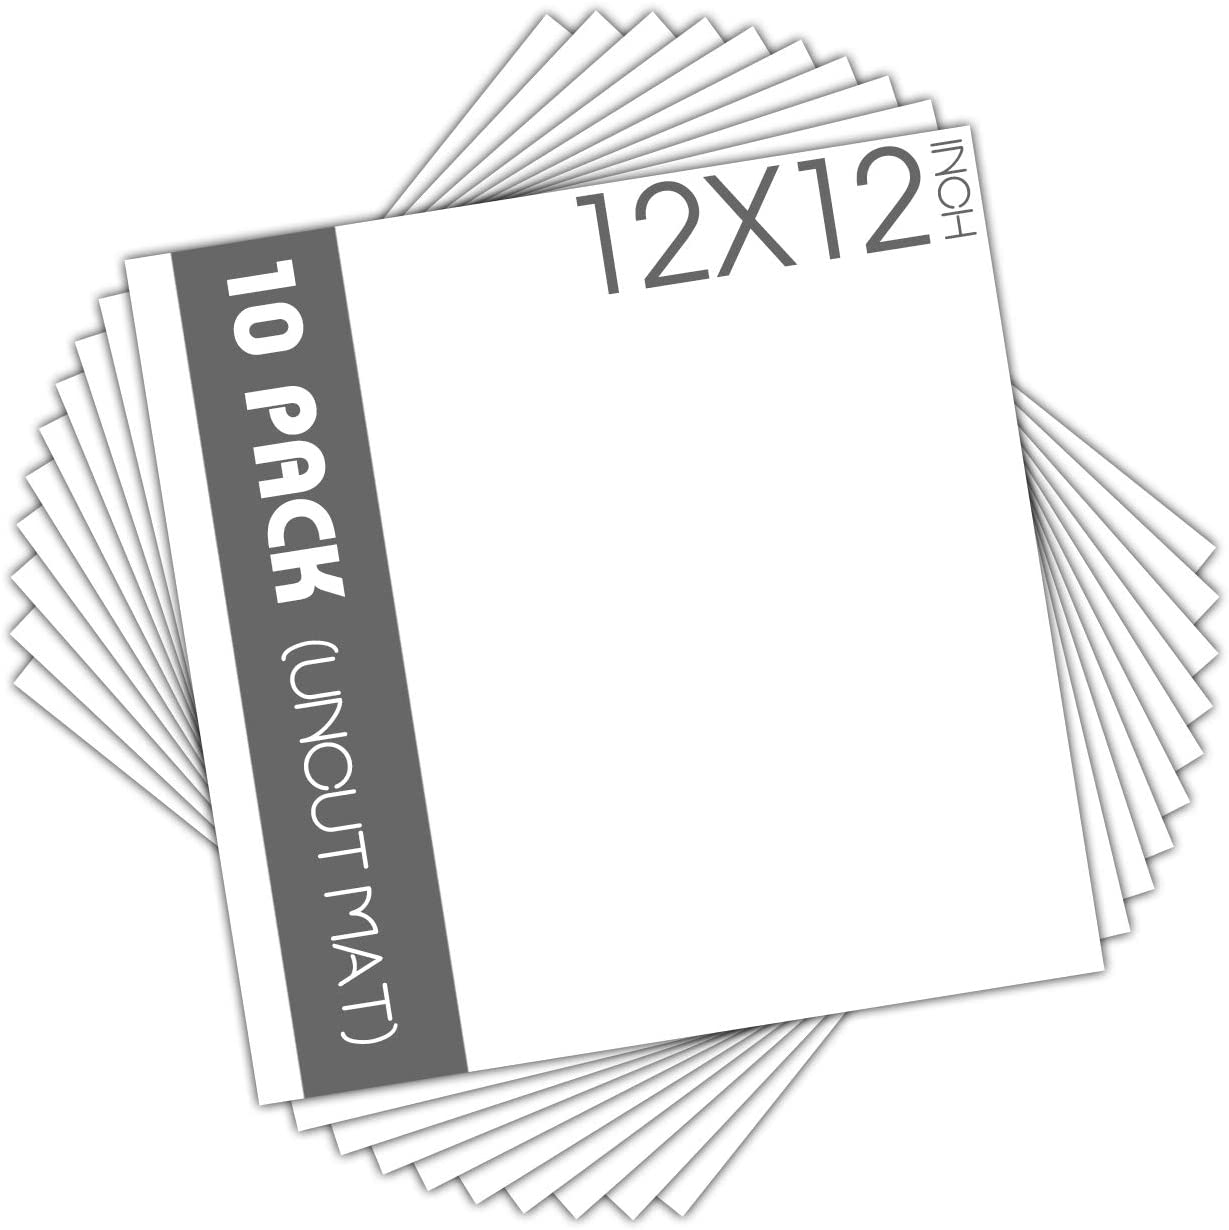 Mat Board Center, Pack of 10, 12x12 Uncut White Color Mats - Acid Free, 4-ply Thickness, White Core - for Pictures, Photos, Framing - Great for DIY Projects or Unique Picture Sizes